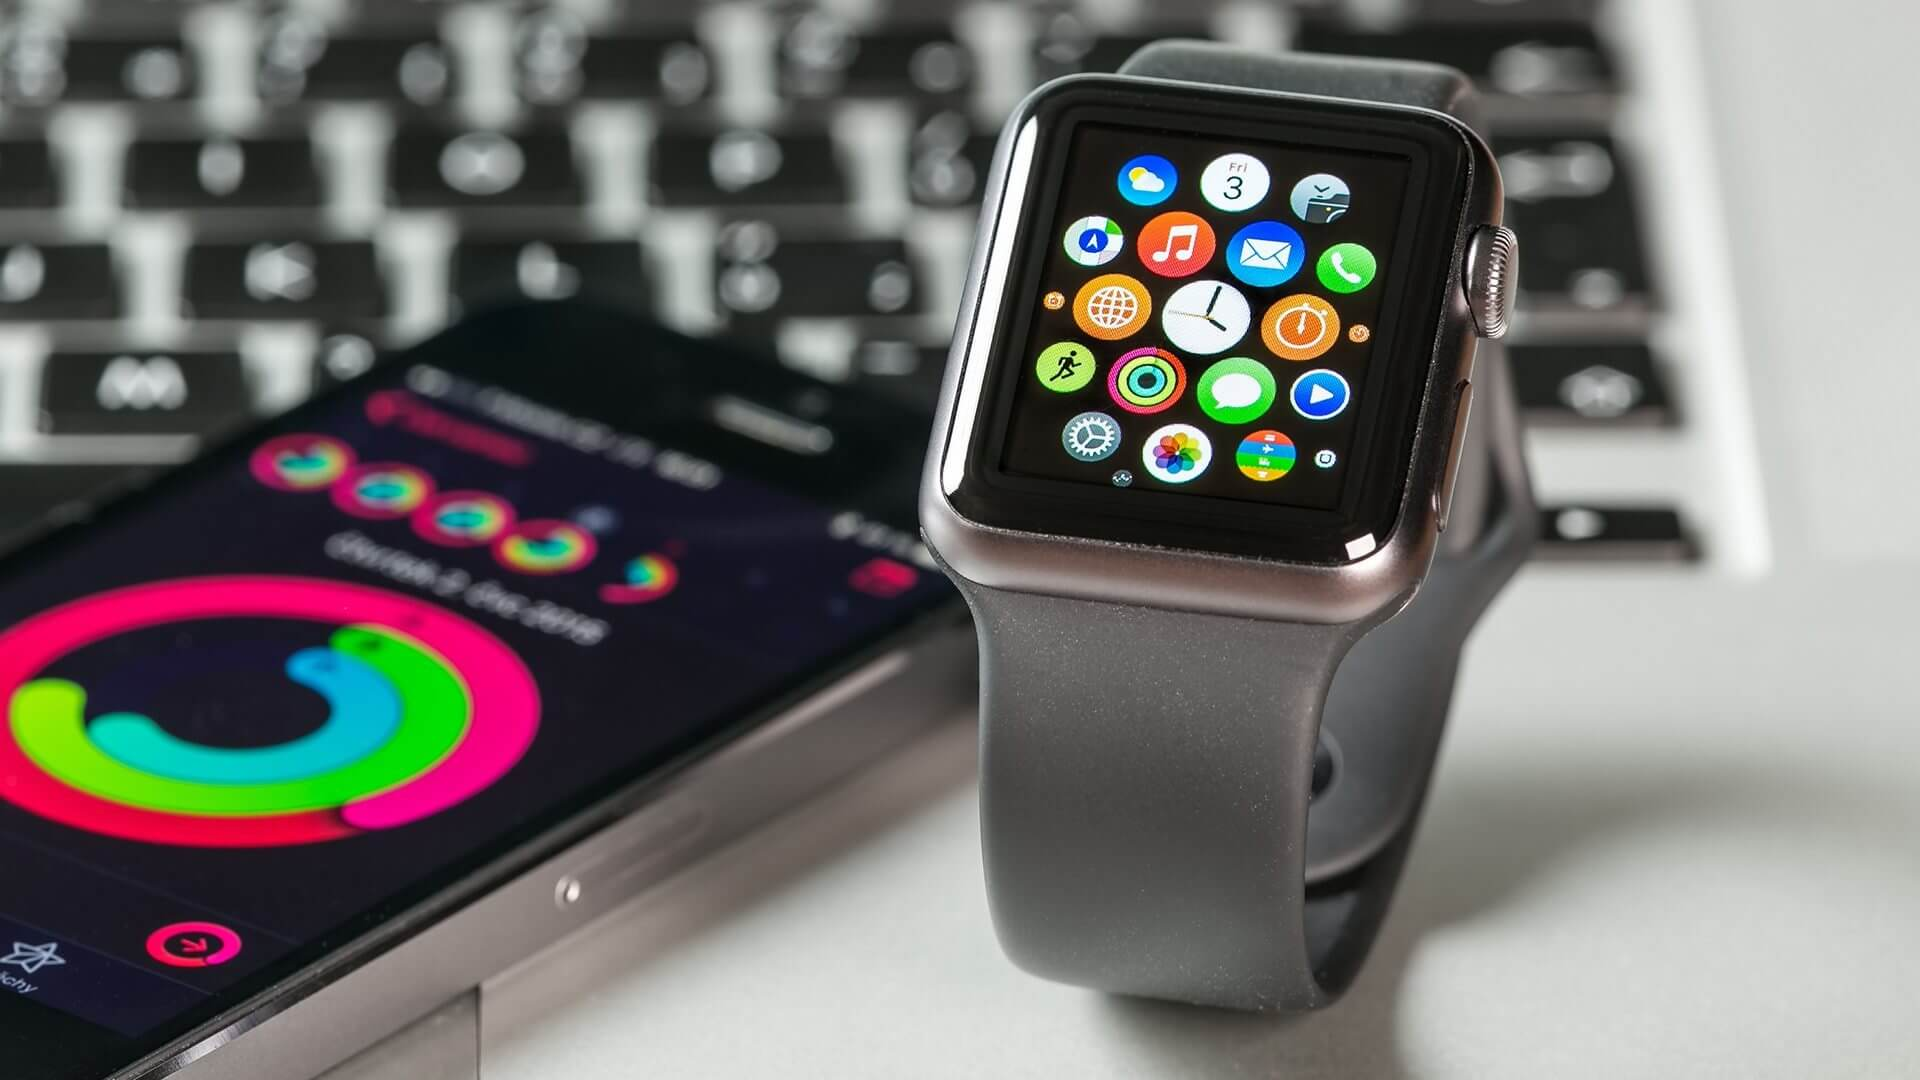 apple watch smartphone mobile devices ss 1920 - Apple Watch perde suporte ao Google Maps e outros aplicativos importantes